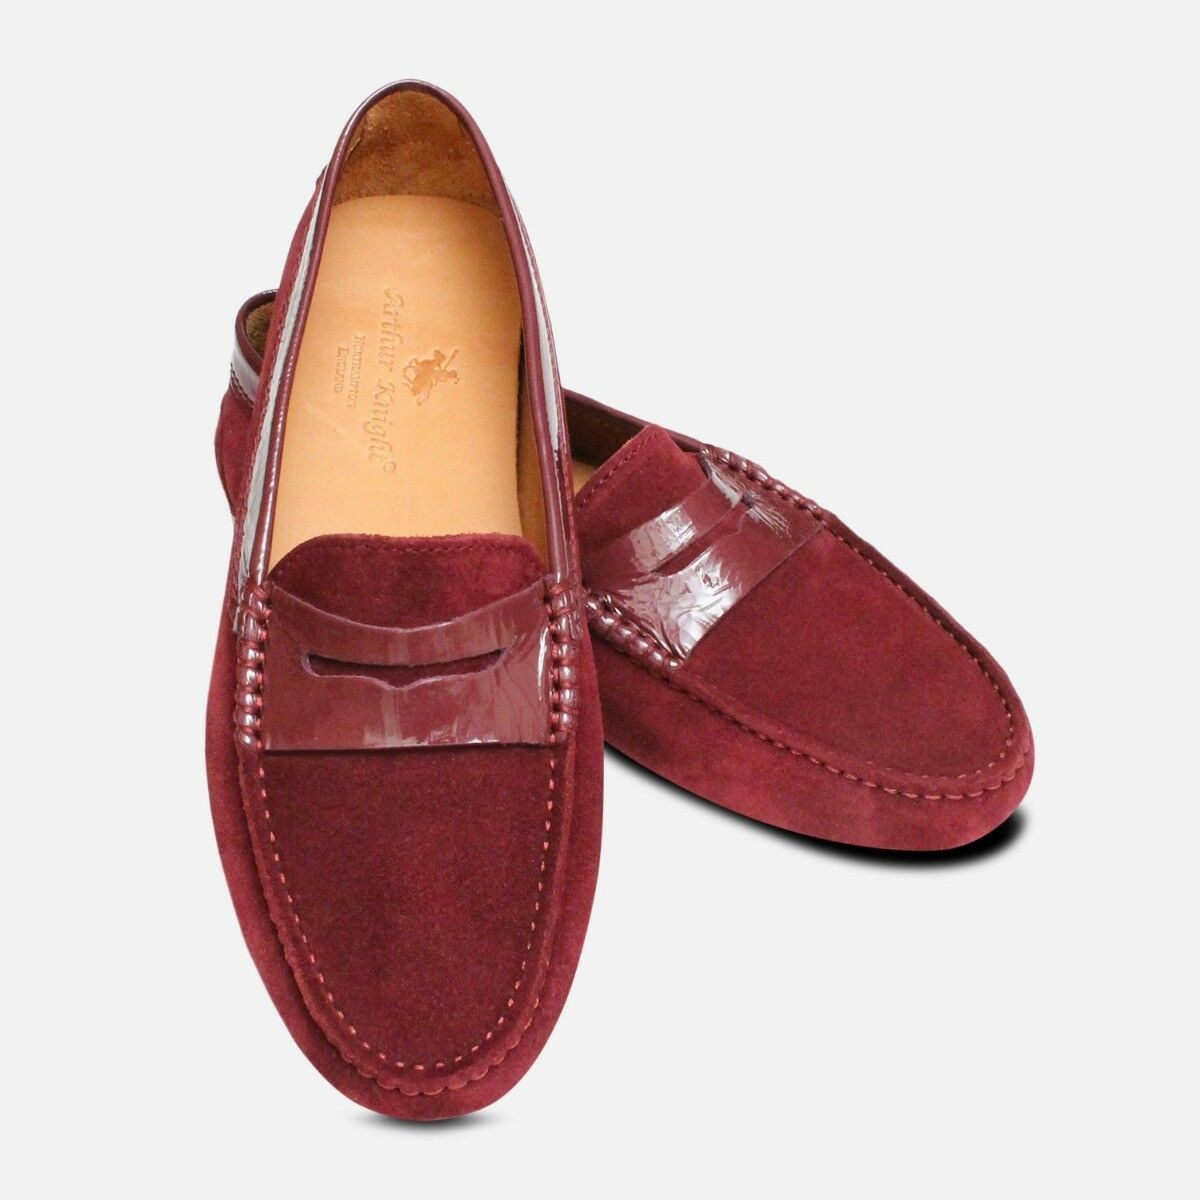 Aubergine Velour Ladies Driving shoes Moccasins